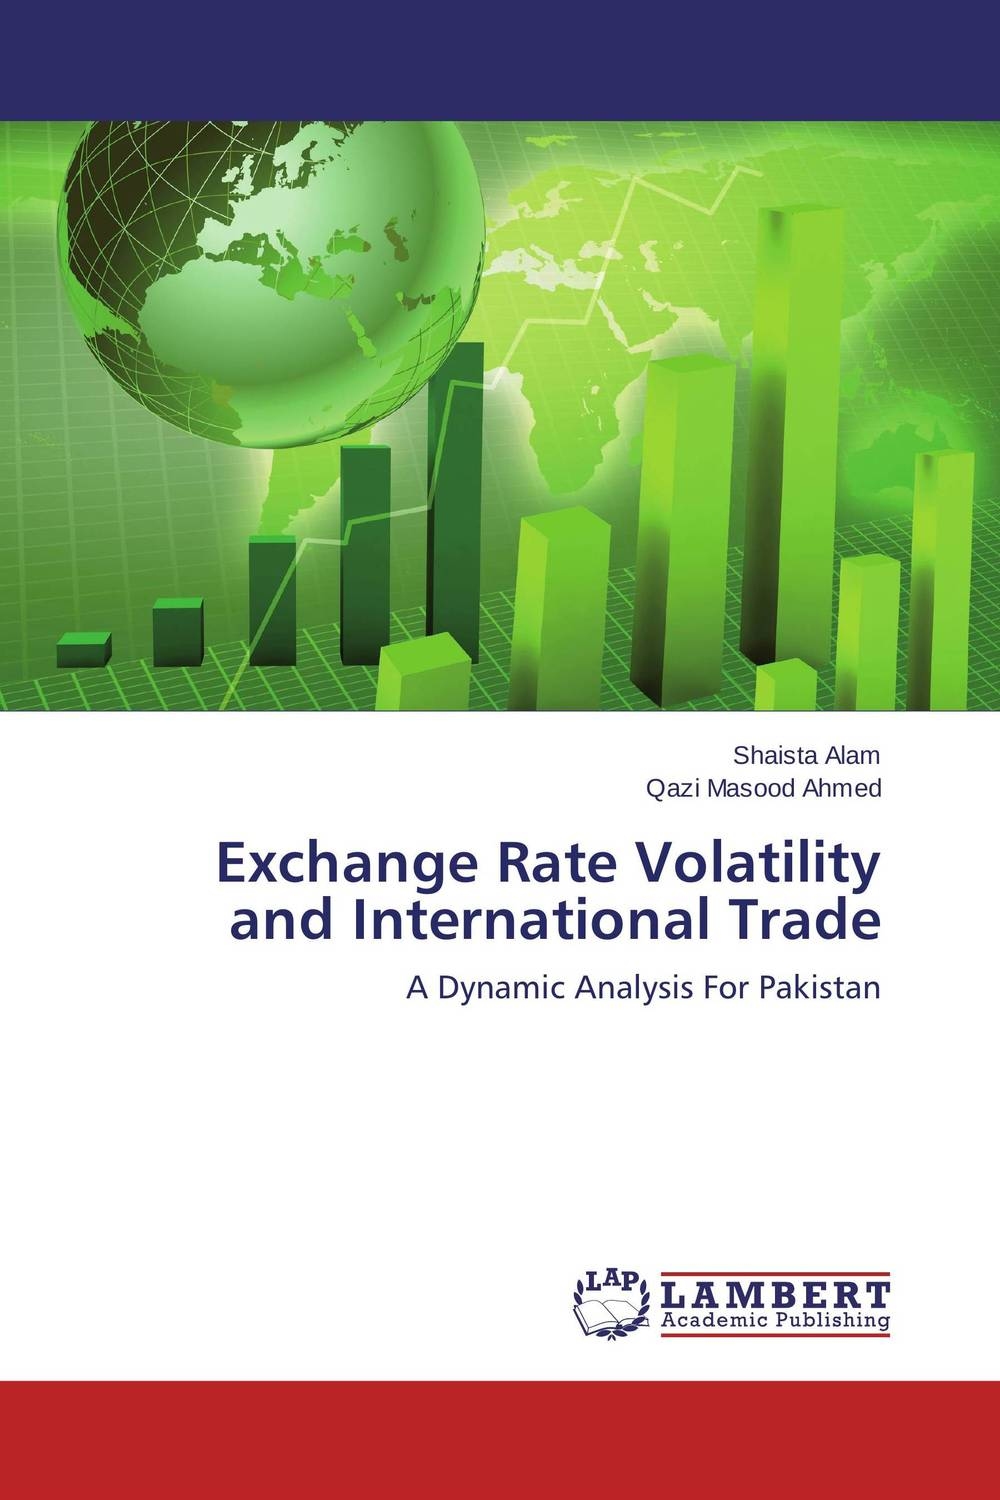 Exchange Rate Volatility and International Trade tobias olweny and kenedy omondi the effect of macro economic factors on stock return volatility at nse